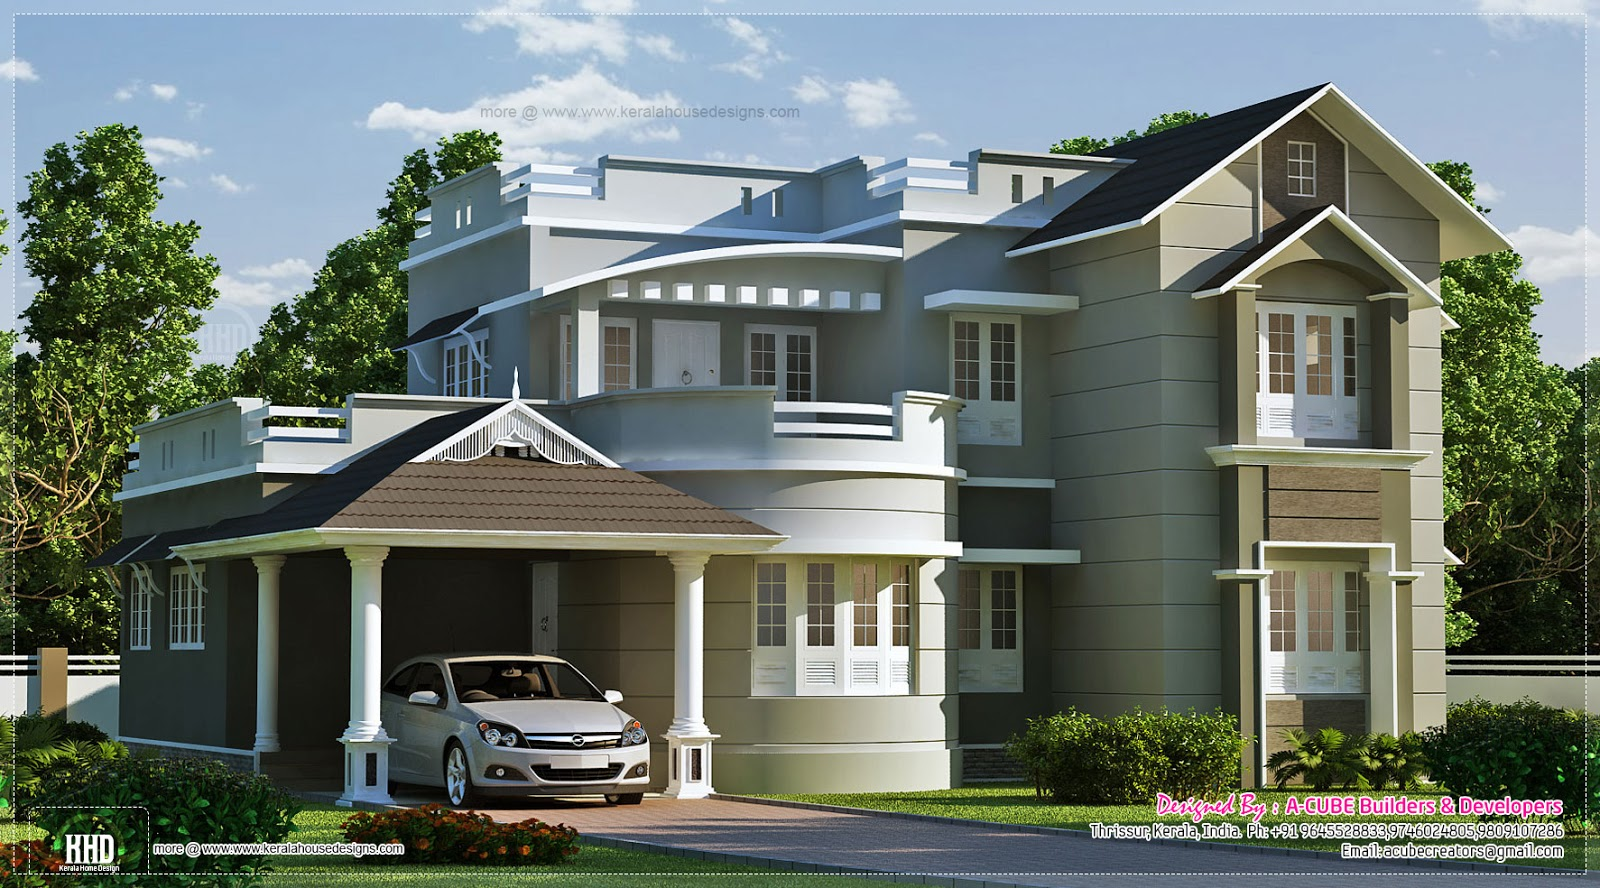 New home designs 18381 hd wallpapers background for New home designs